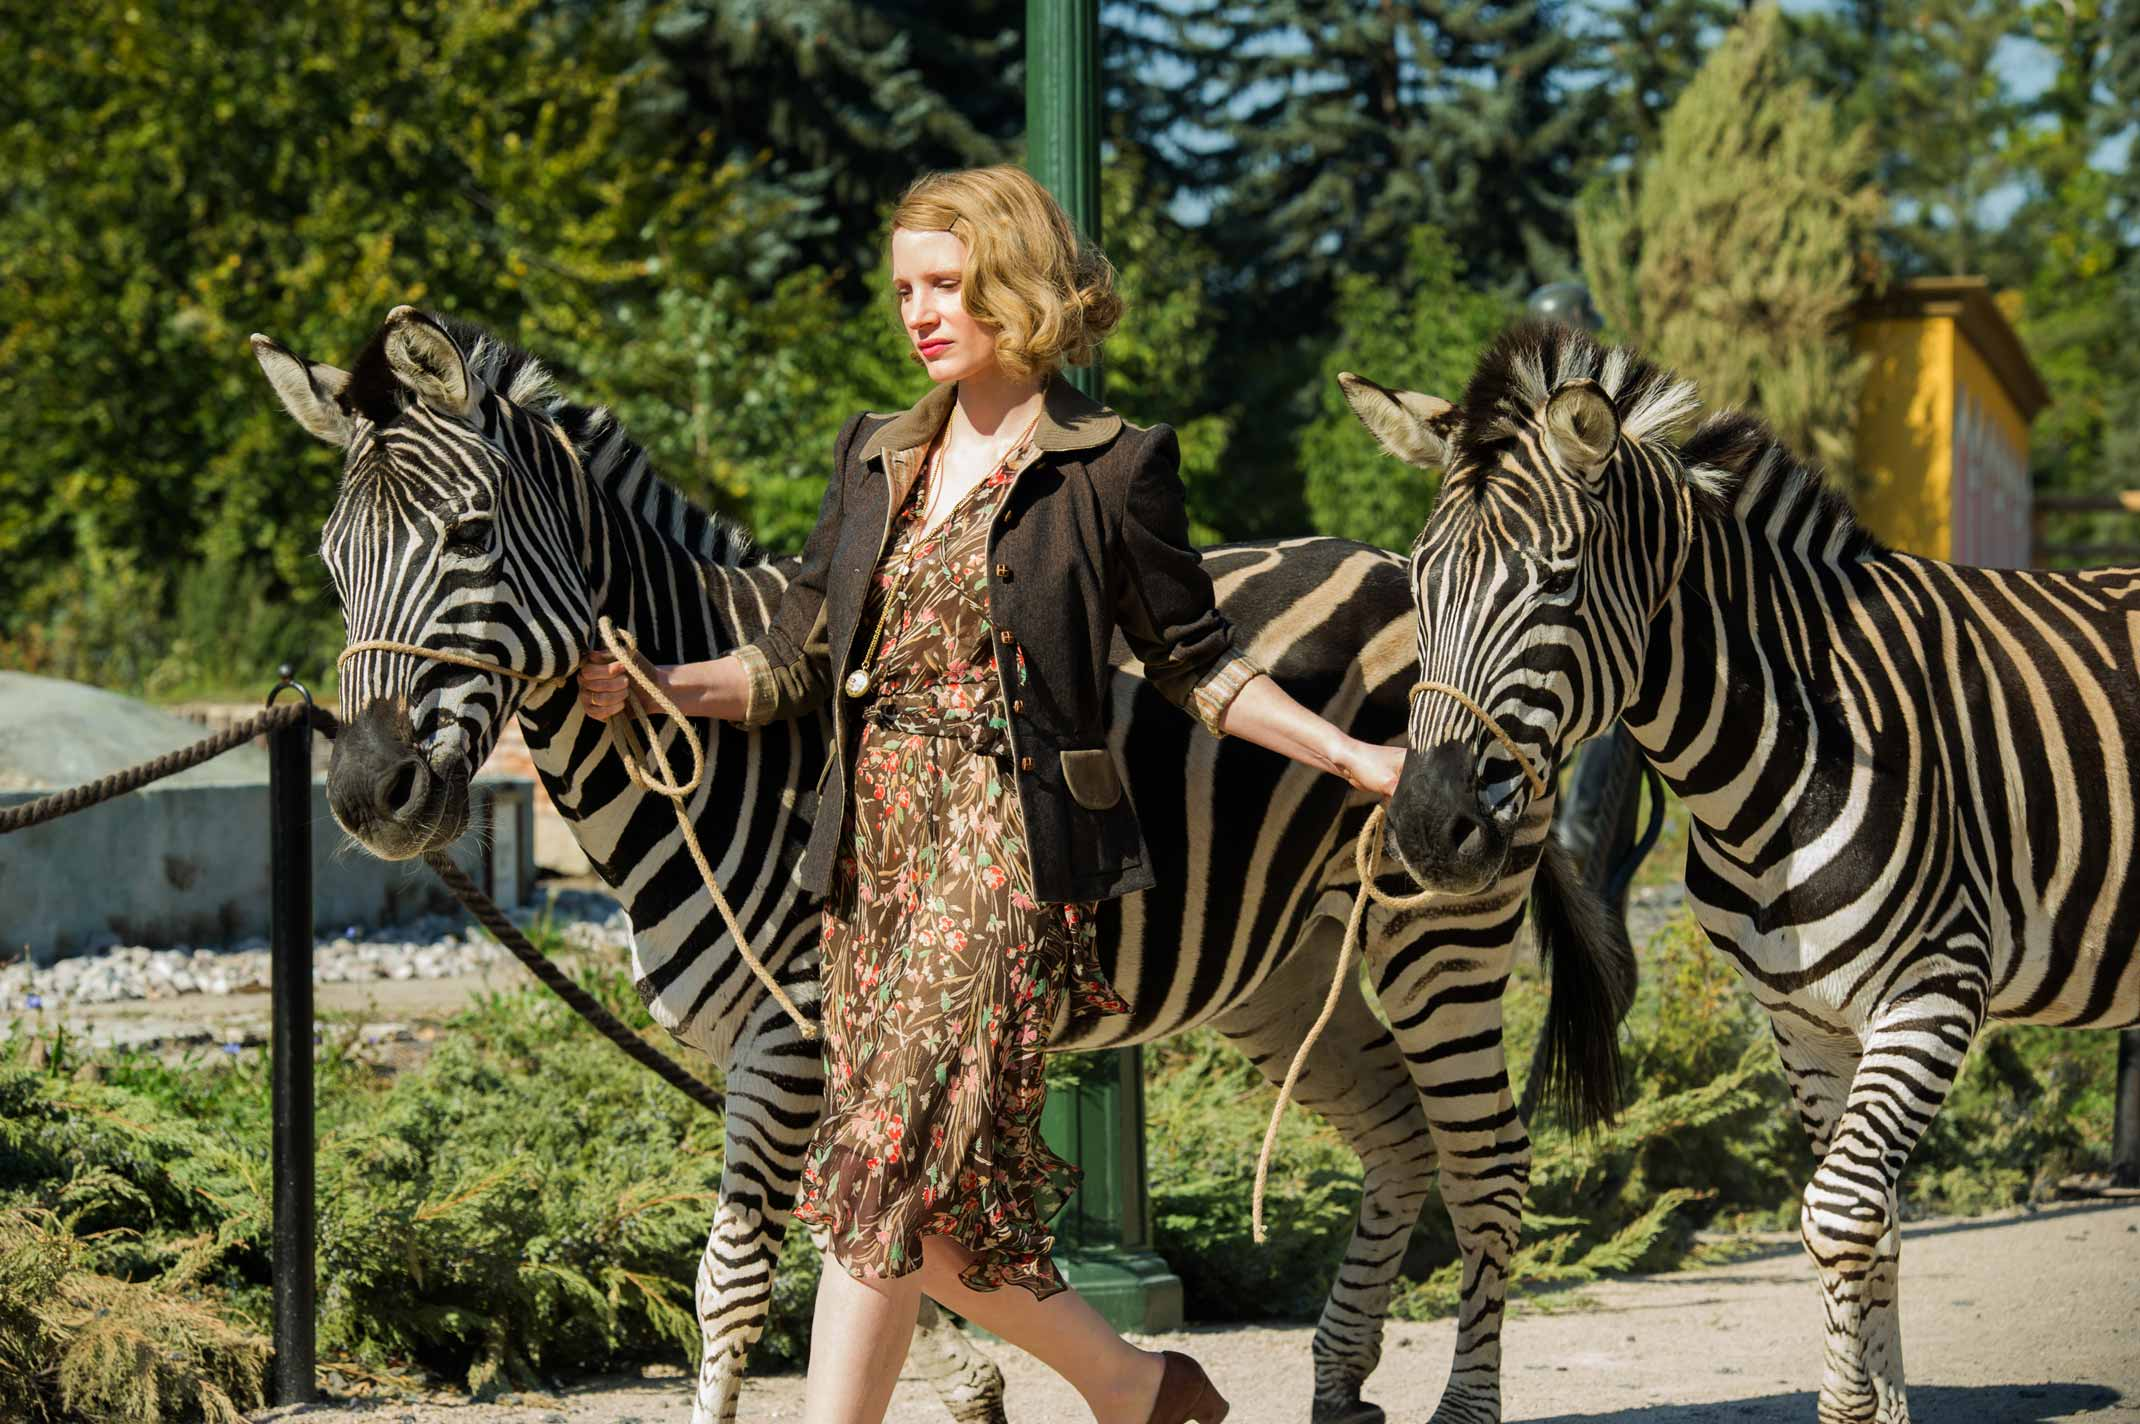 the-zookeepers-wife-jessica-chastain1-web